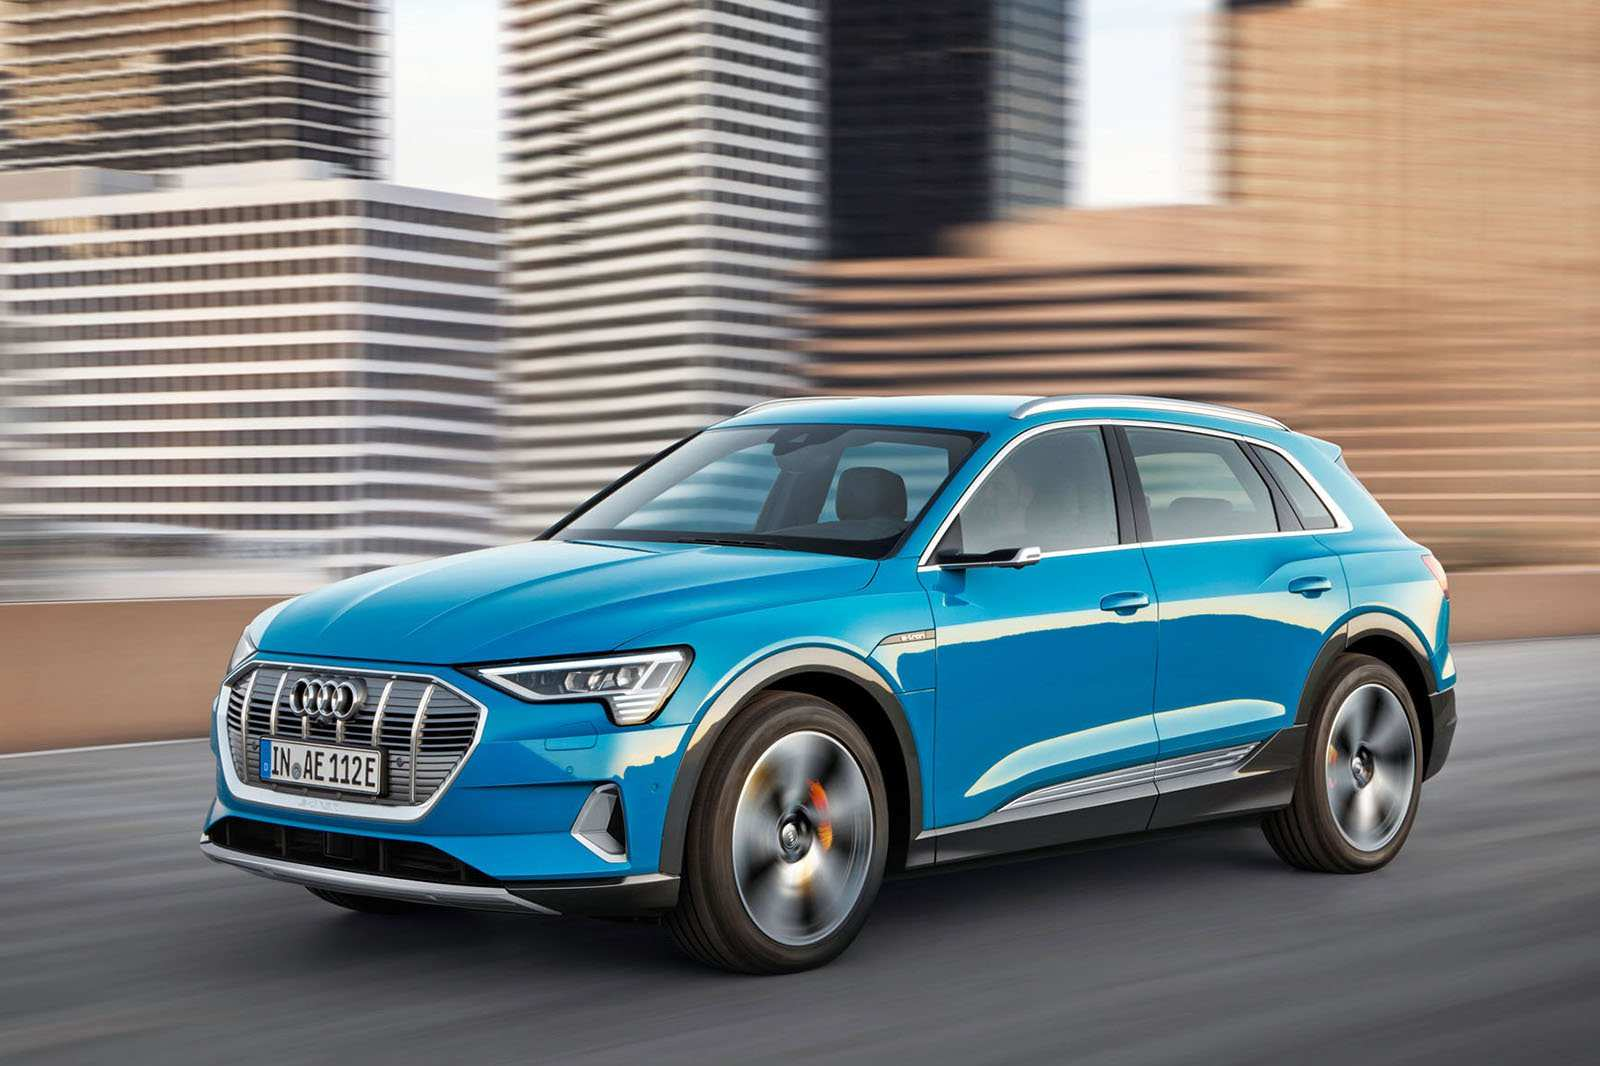 54 Concept of 2019 Audi E Tron Quattro Cost Redesign and Concept for 2019 Audi E Tron Quattro Cost